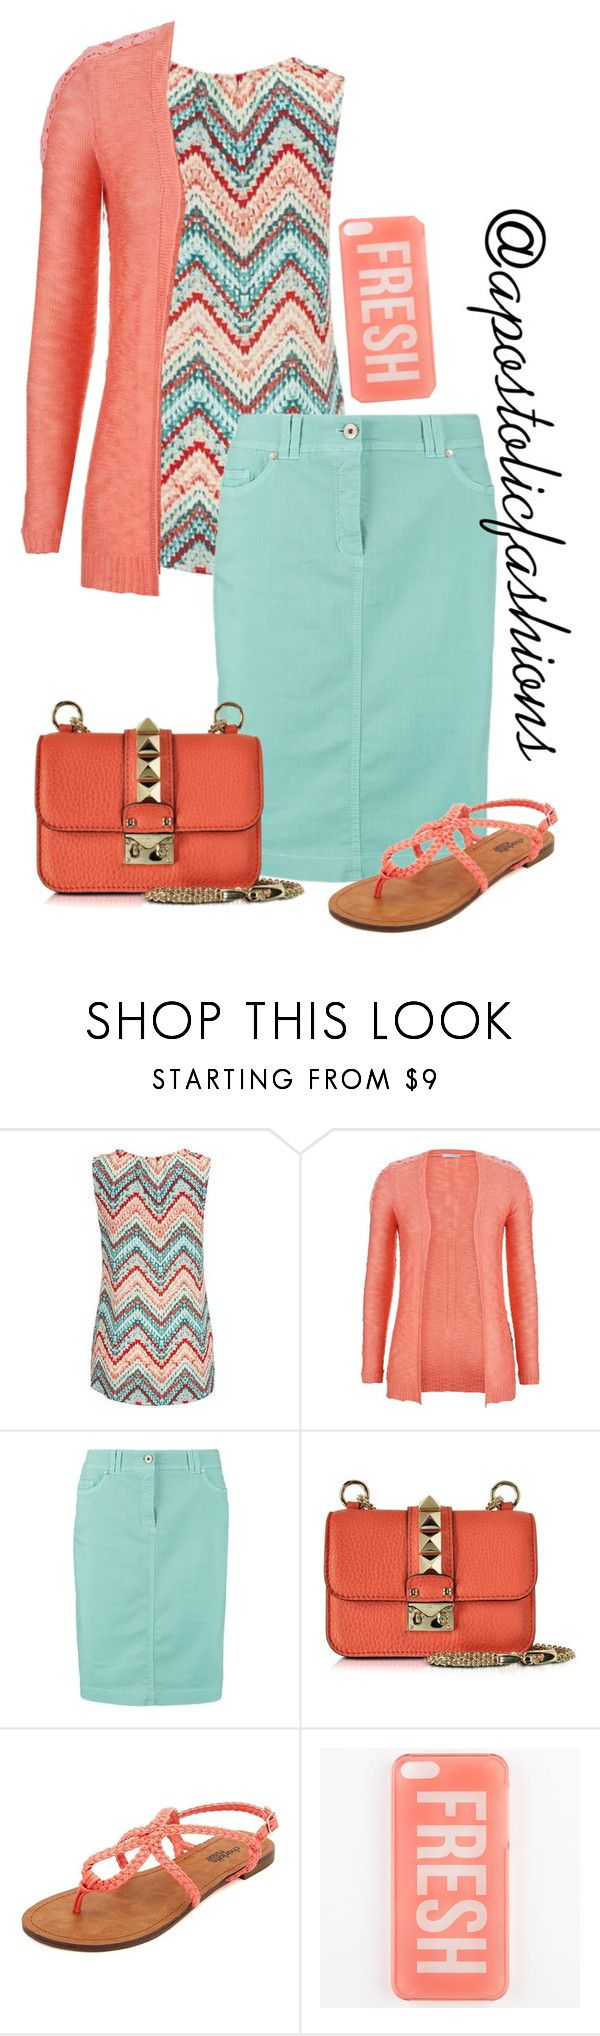 """""""Apostolic Fashions #1248"""" by apostolicfashions ❤ liked on Polyvore featuring maurices, Gerry Weber Edition, Valentino and Charlotte Russe"""